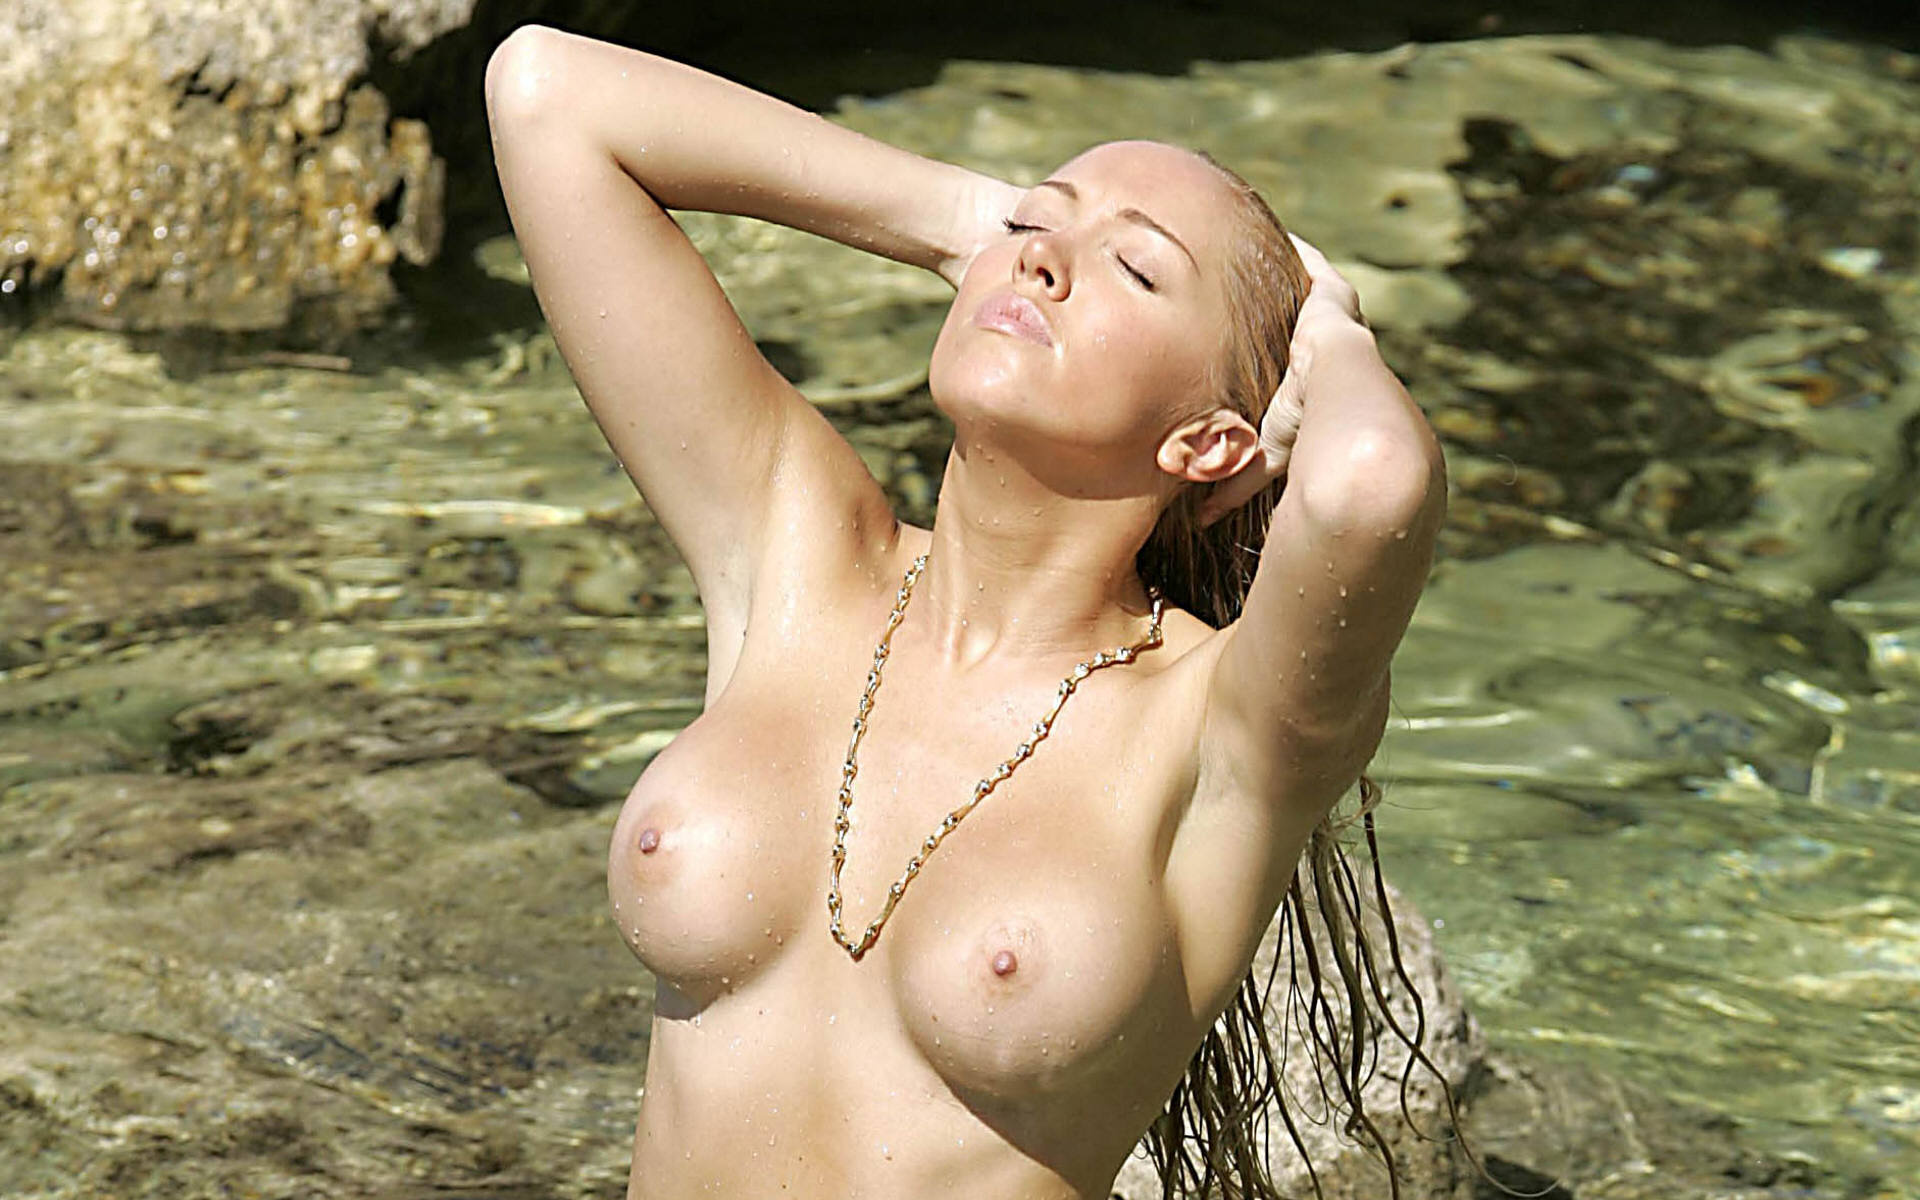 A wet girl getting naked